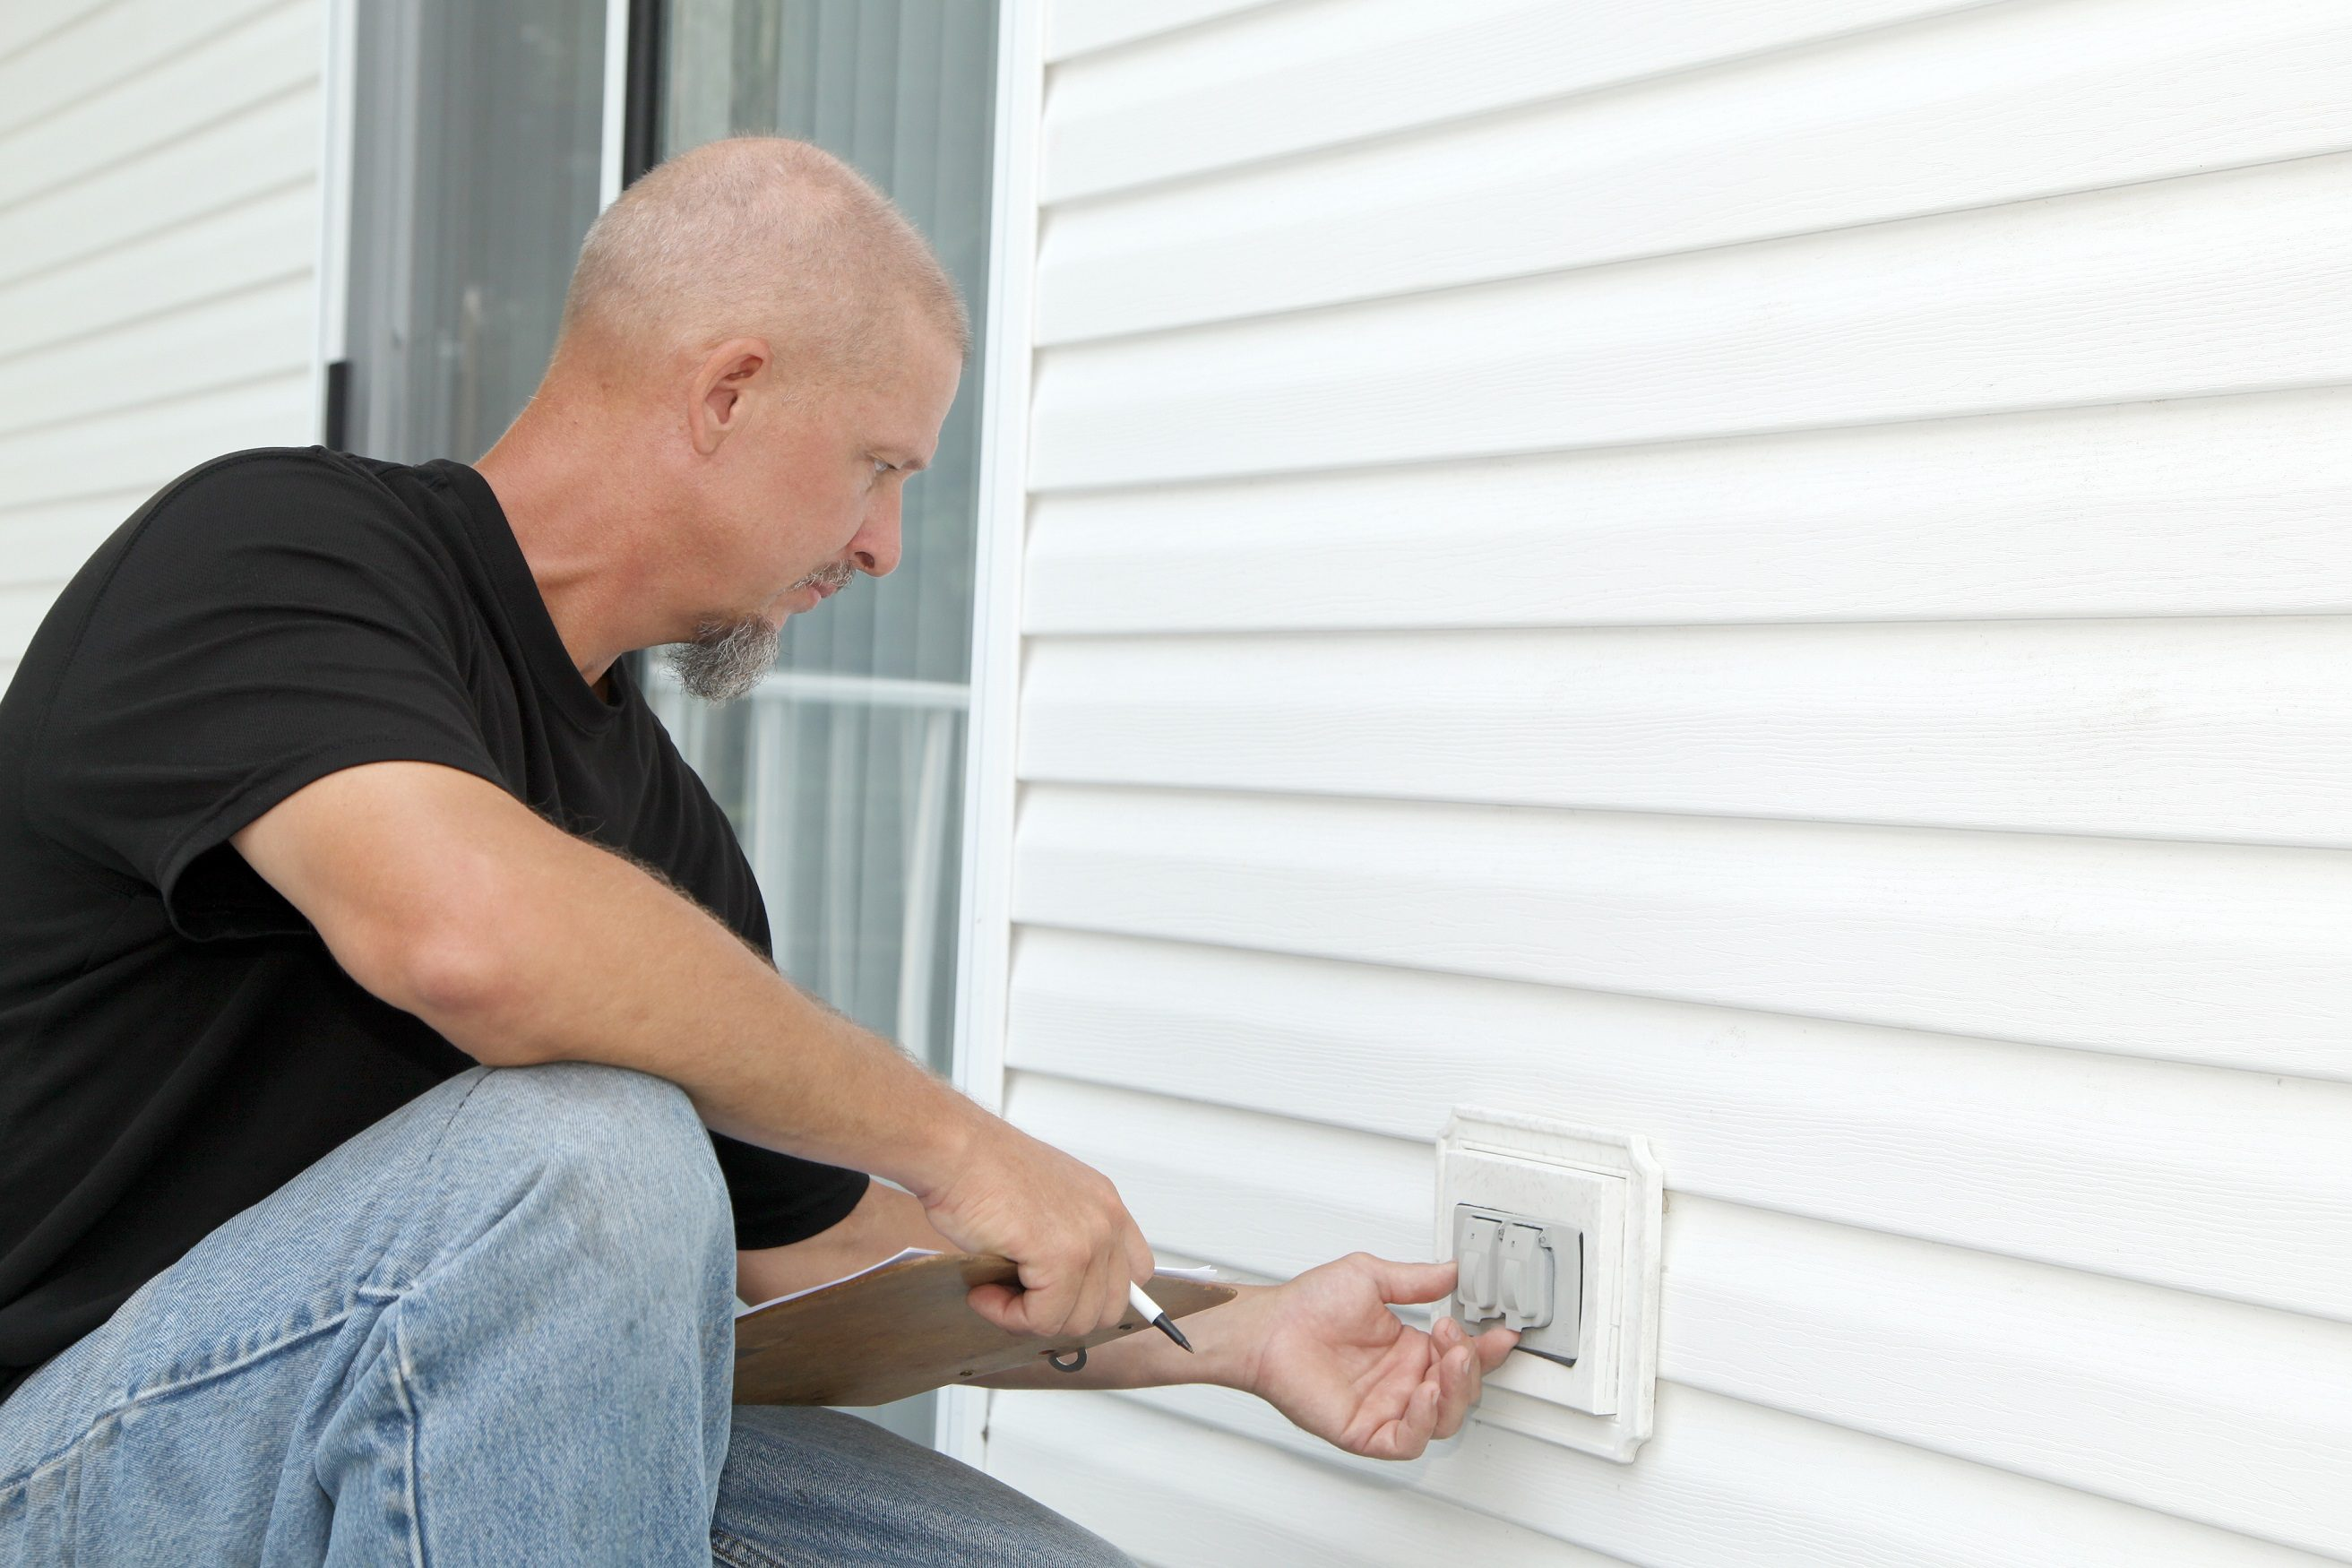 Contractor inspecting outlets